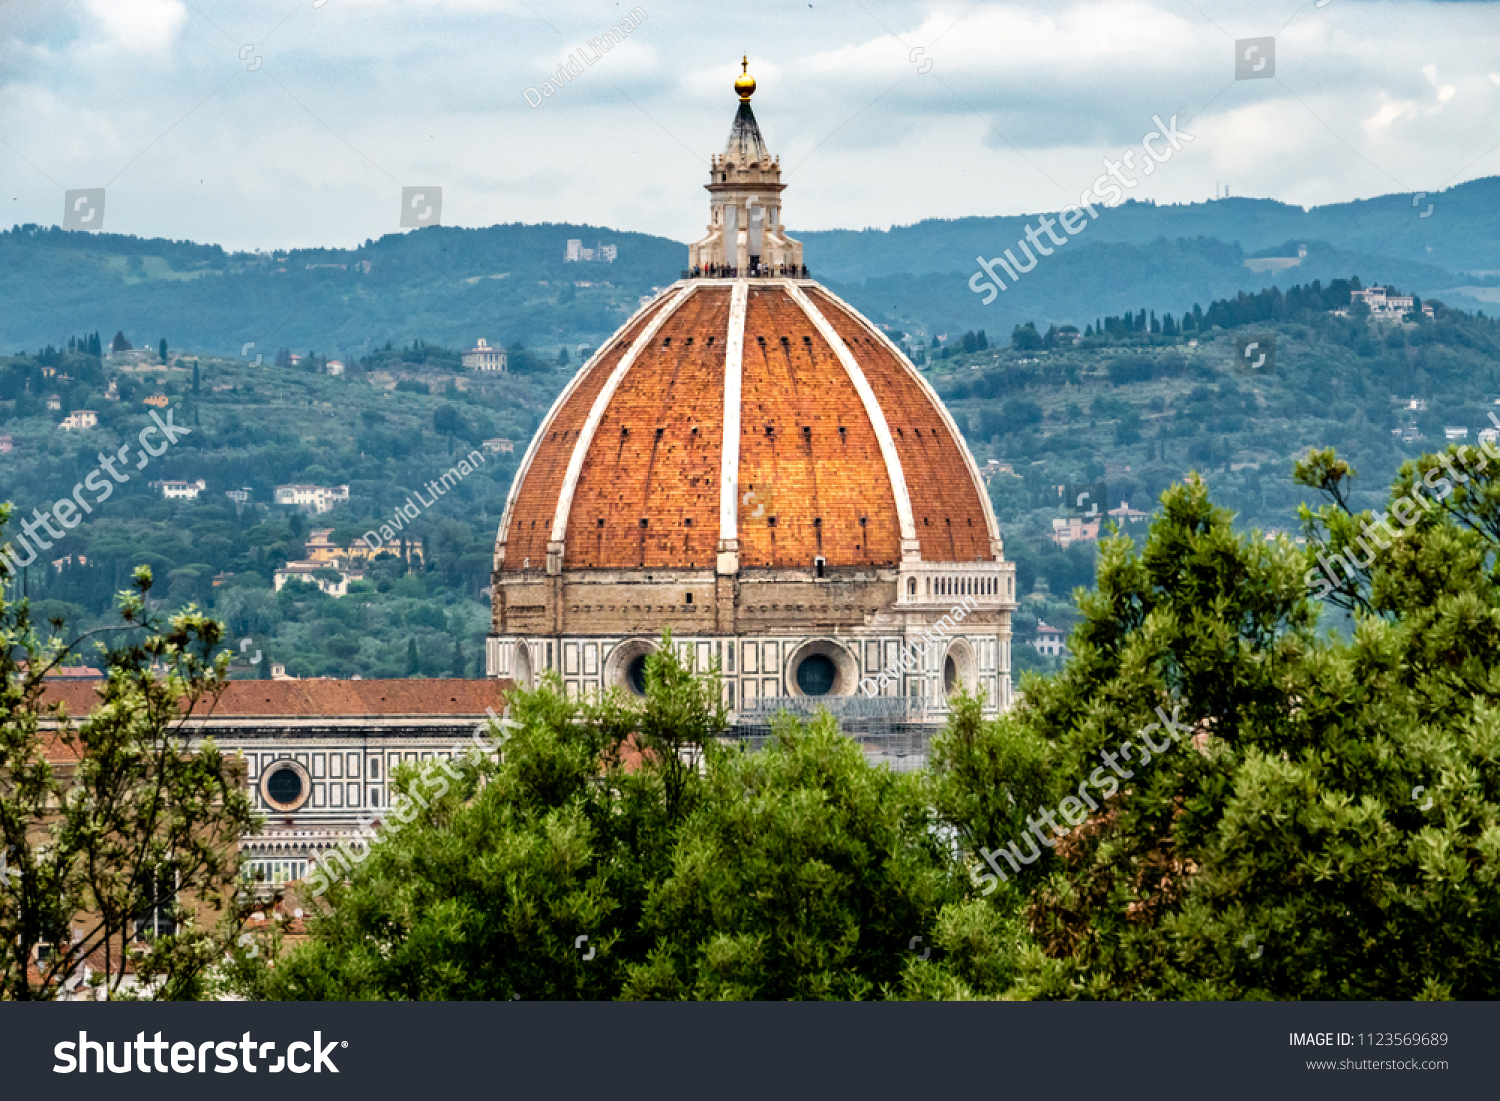 Unidentifiable people can be seen at the top of the Duomo, at the Florence Cathedral, as viewed from the nearby hillside of the Boboli Garden.